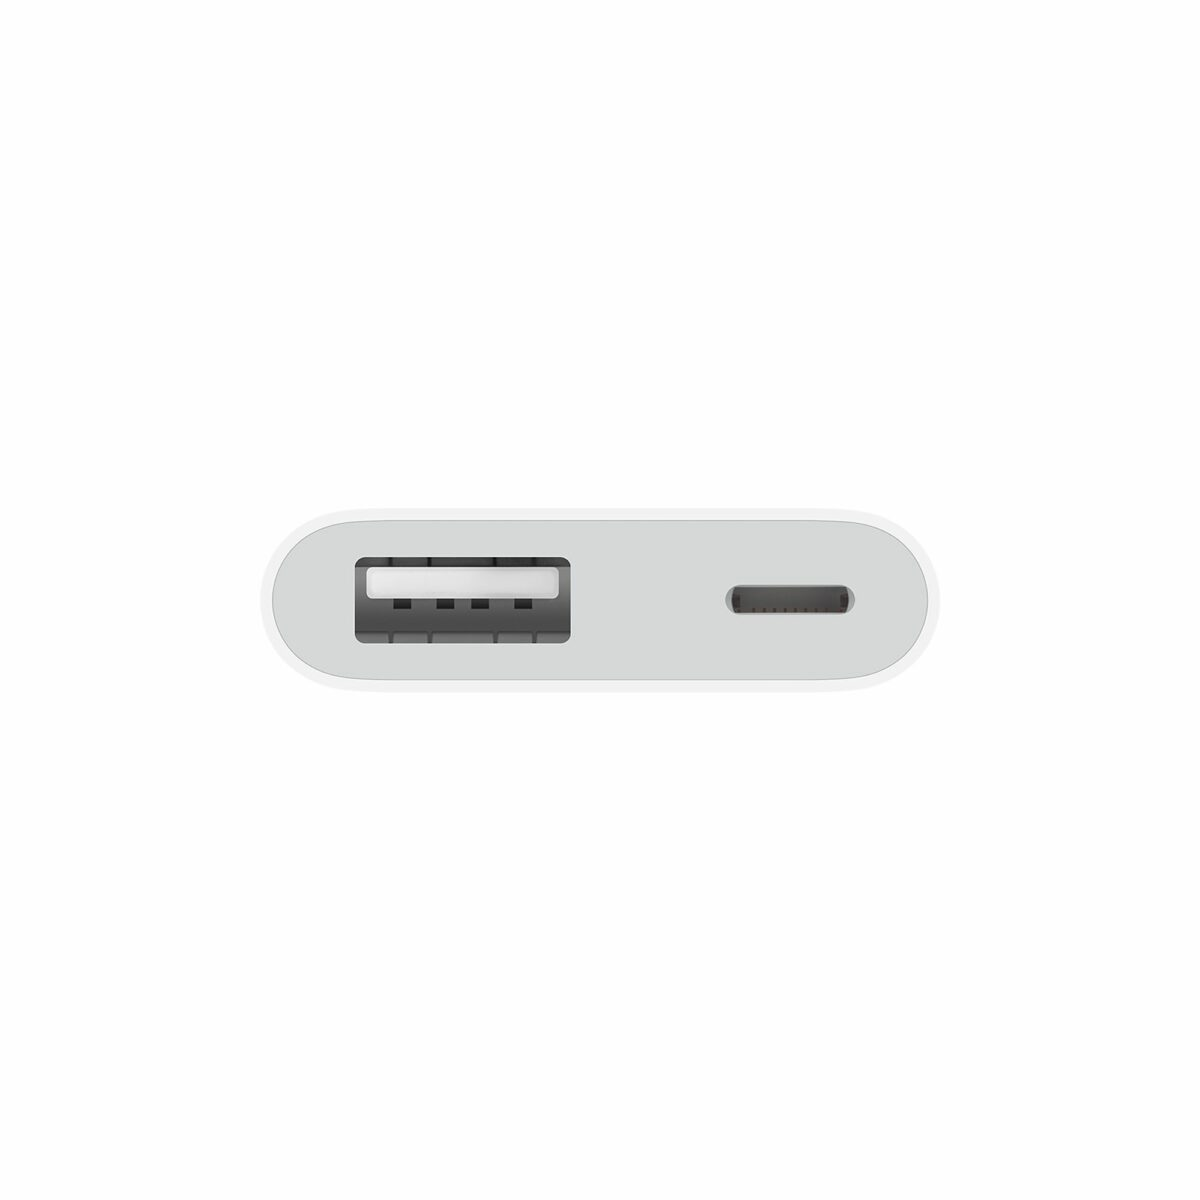 apple_lightning_to_usb3_camera_adapter